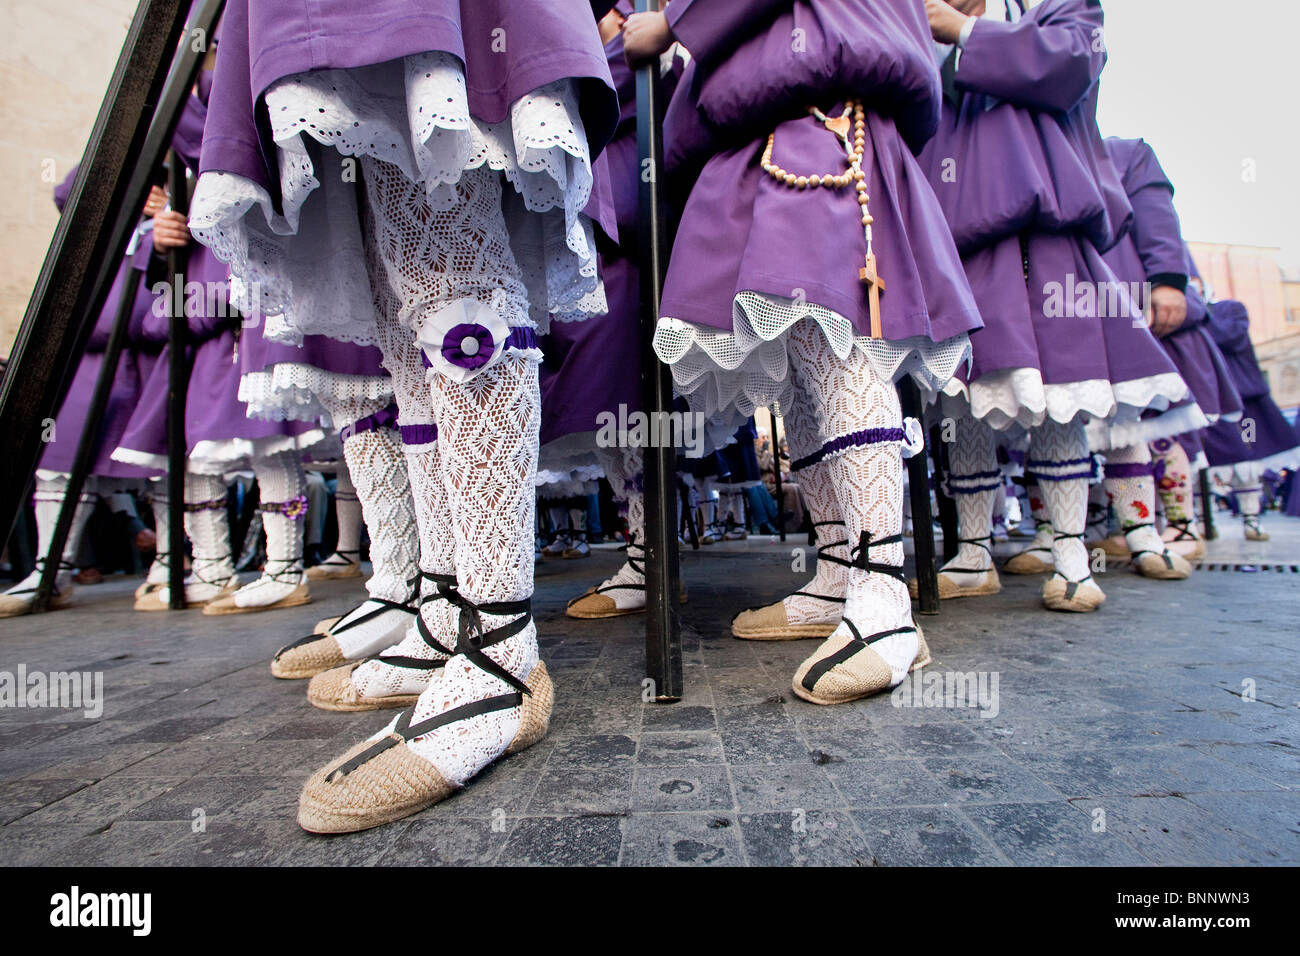 Andalusia Spain Good Friday religion procession custom traveling tourism vacation holidays Stock Photo